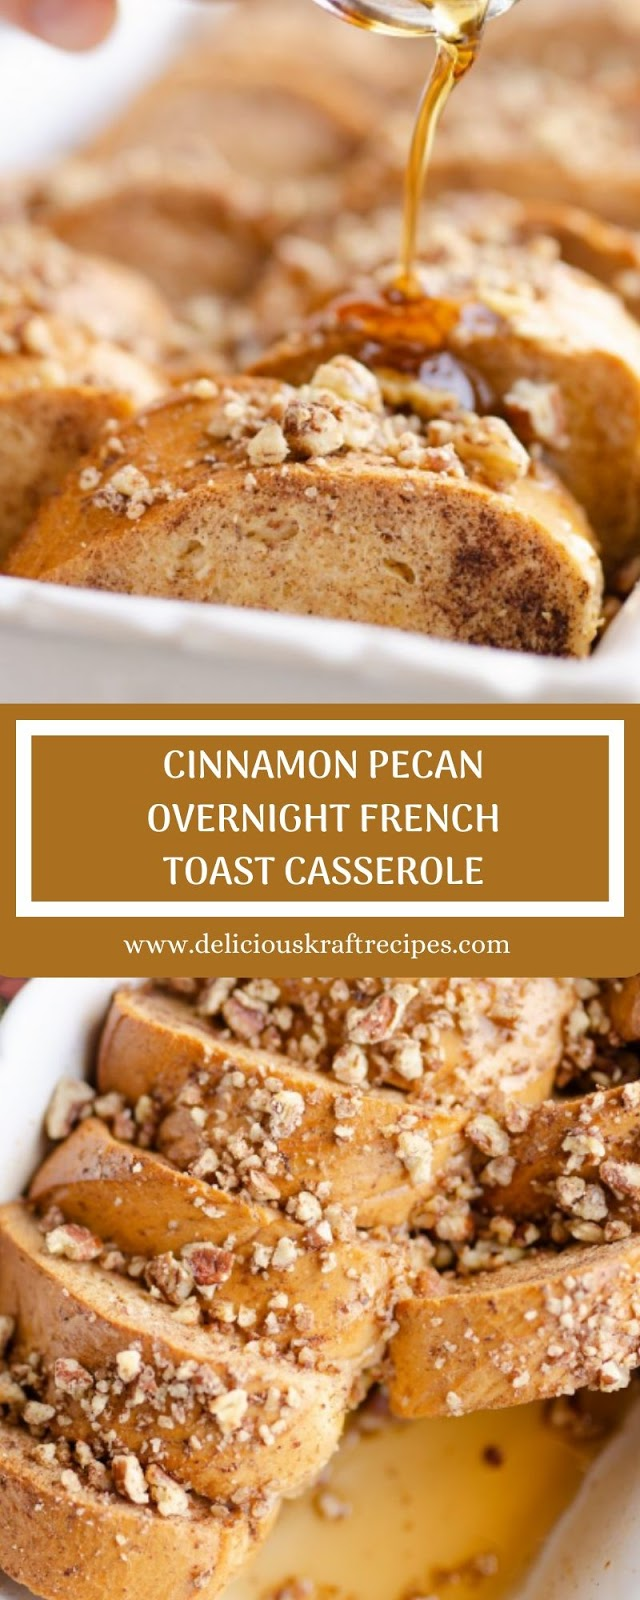 CINNAMON PECAN OVERNIGHT FRENCH TOAST CASSEROLE